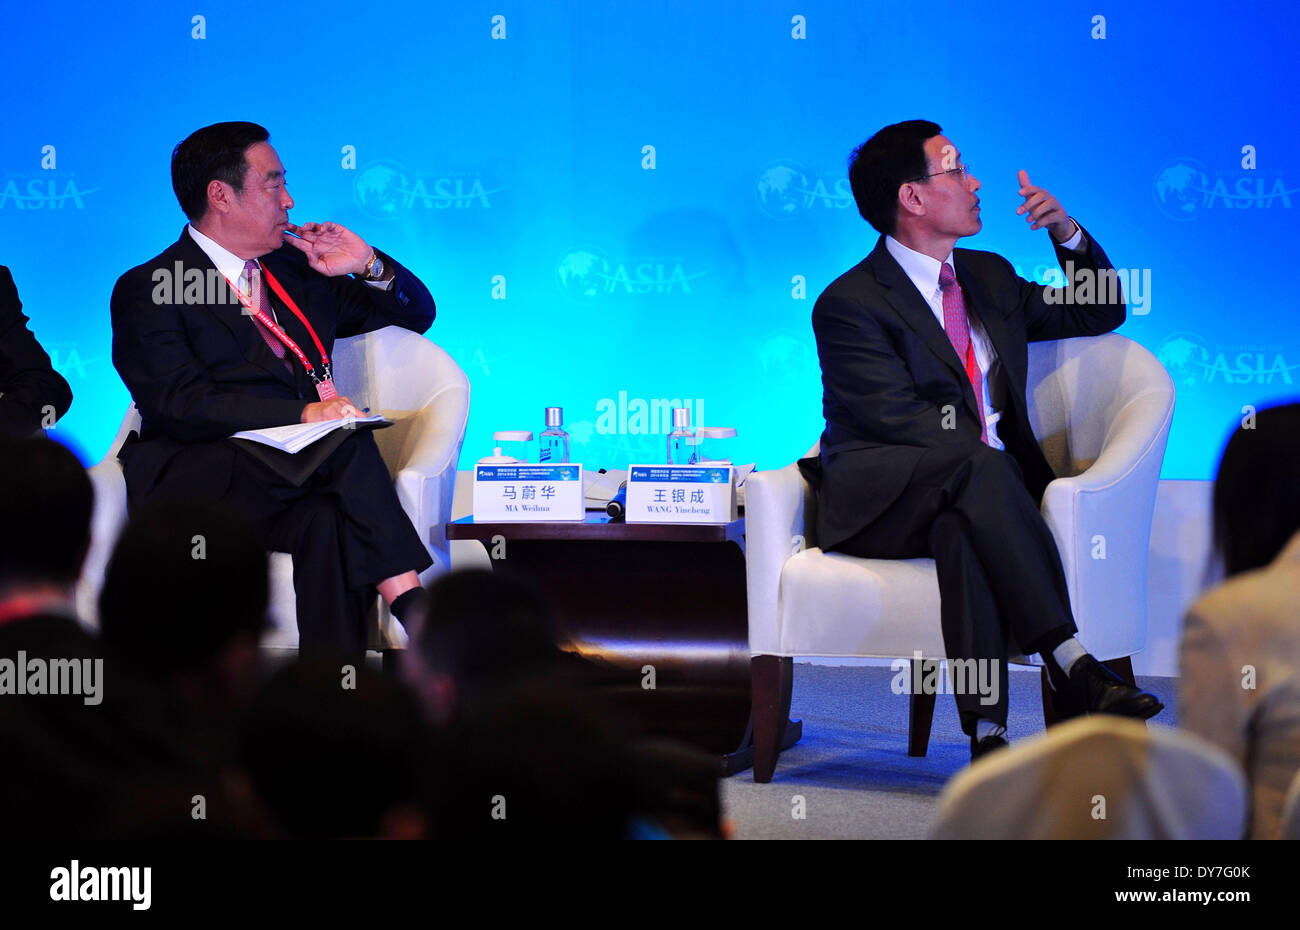 Boao, China's Hainan Province. 9th Apr, 2014. Ma Weihua (L), chairman of Wing Lung Bank Ltd. and former executive director, president and CEO of China Merchants Bank, and Wang Yincheng, vice chairman and president of the People's Insurance Company (Group) of China Ltd., attend a panel of 'Internet-Finance: Towards Rational Exuberance' during the Boao Forum for Asia (BFA) annual conference 2014 in Boao, south China's Hainan Province, April 9, 2014. © Guo Cheng/Xinhua/Alamy Live News - Stock Image